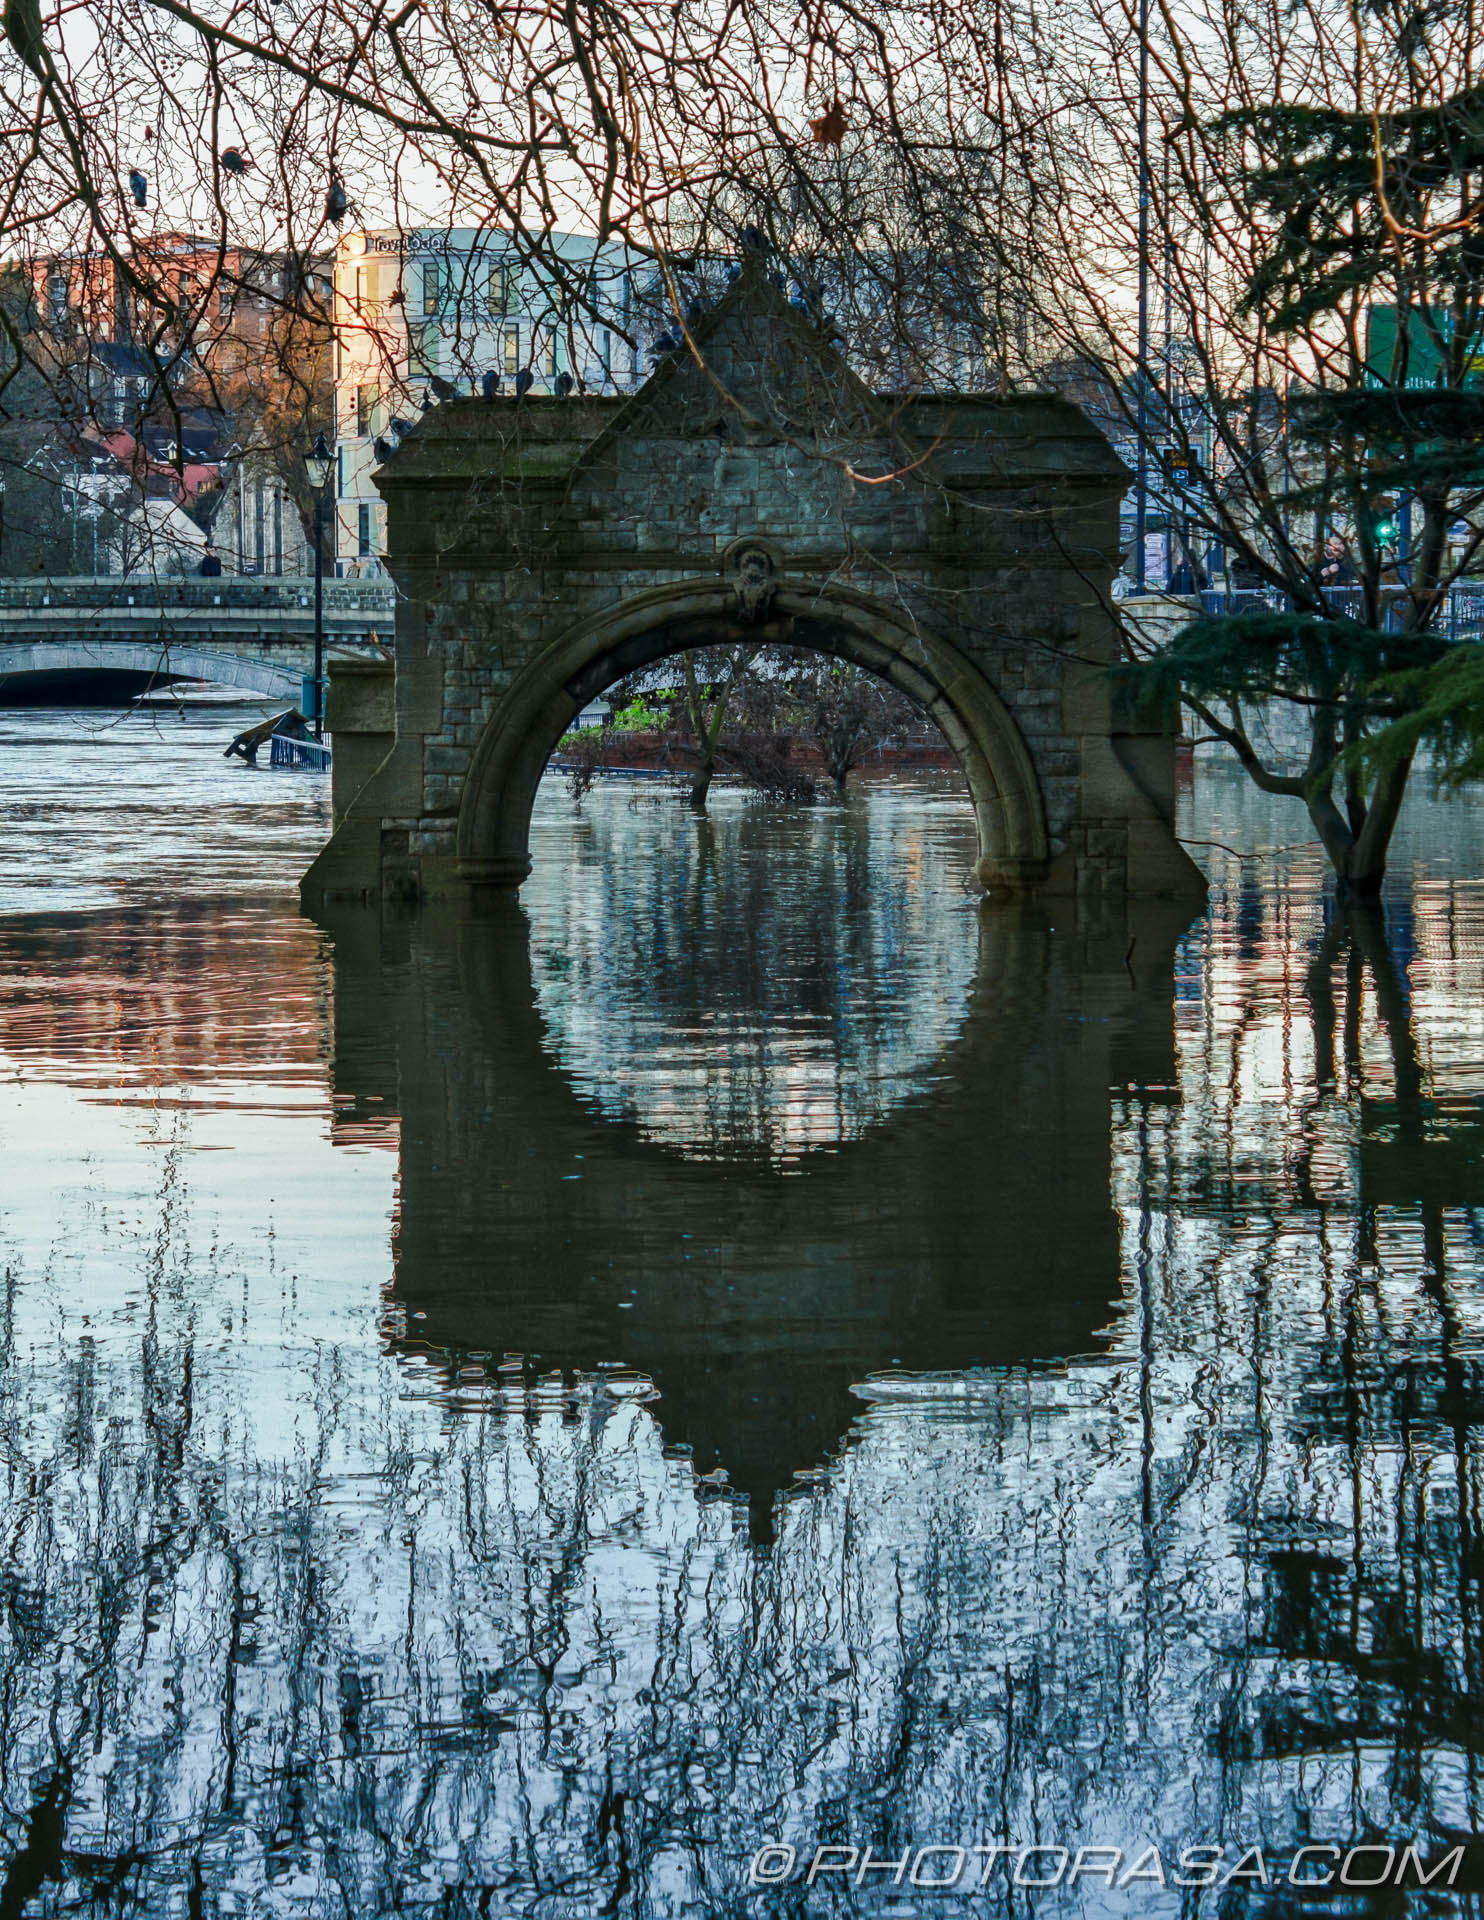 http://photorasa.com/wet-xmas-maidstone-river-medway-floods-town-centre/flooded-arch-reflection/